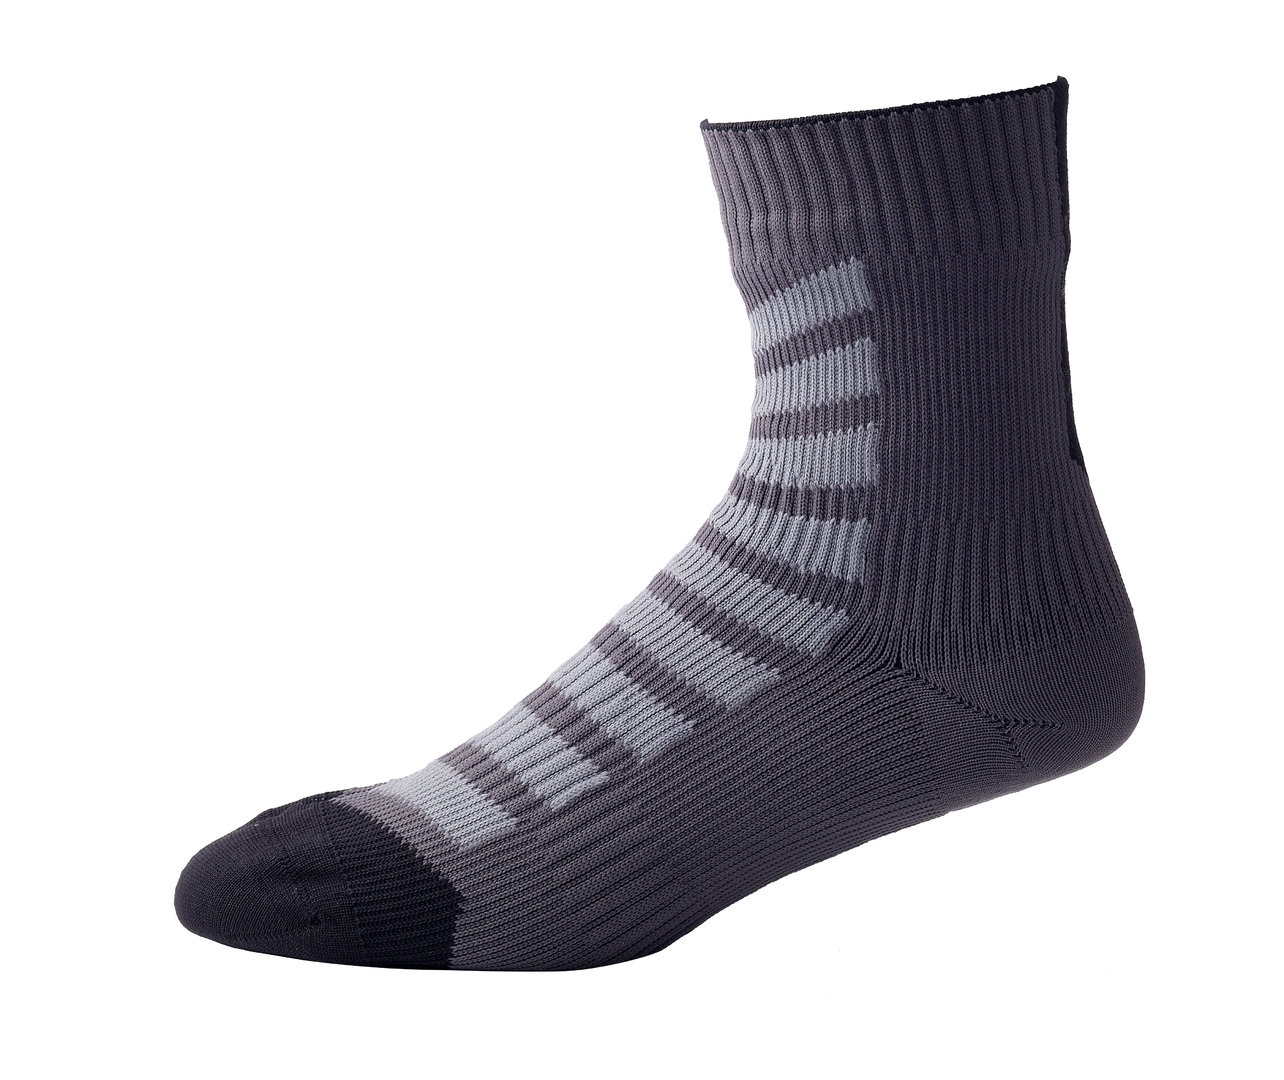 Sealskinz - Calze MTB Ankle with Hydrostop Anthracite/Charcoal/Black